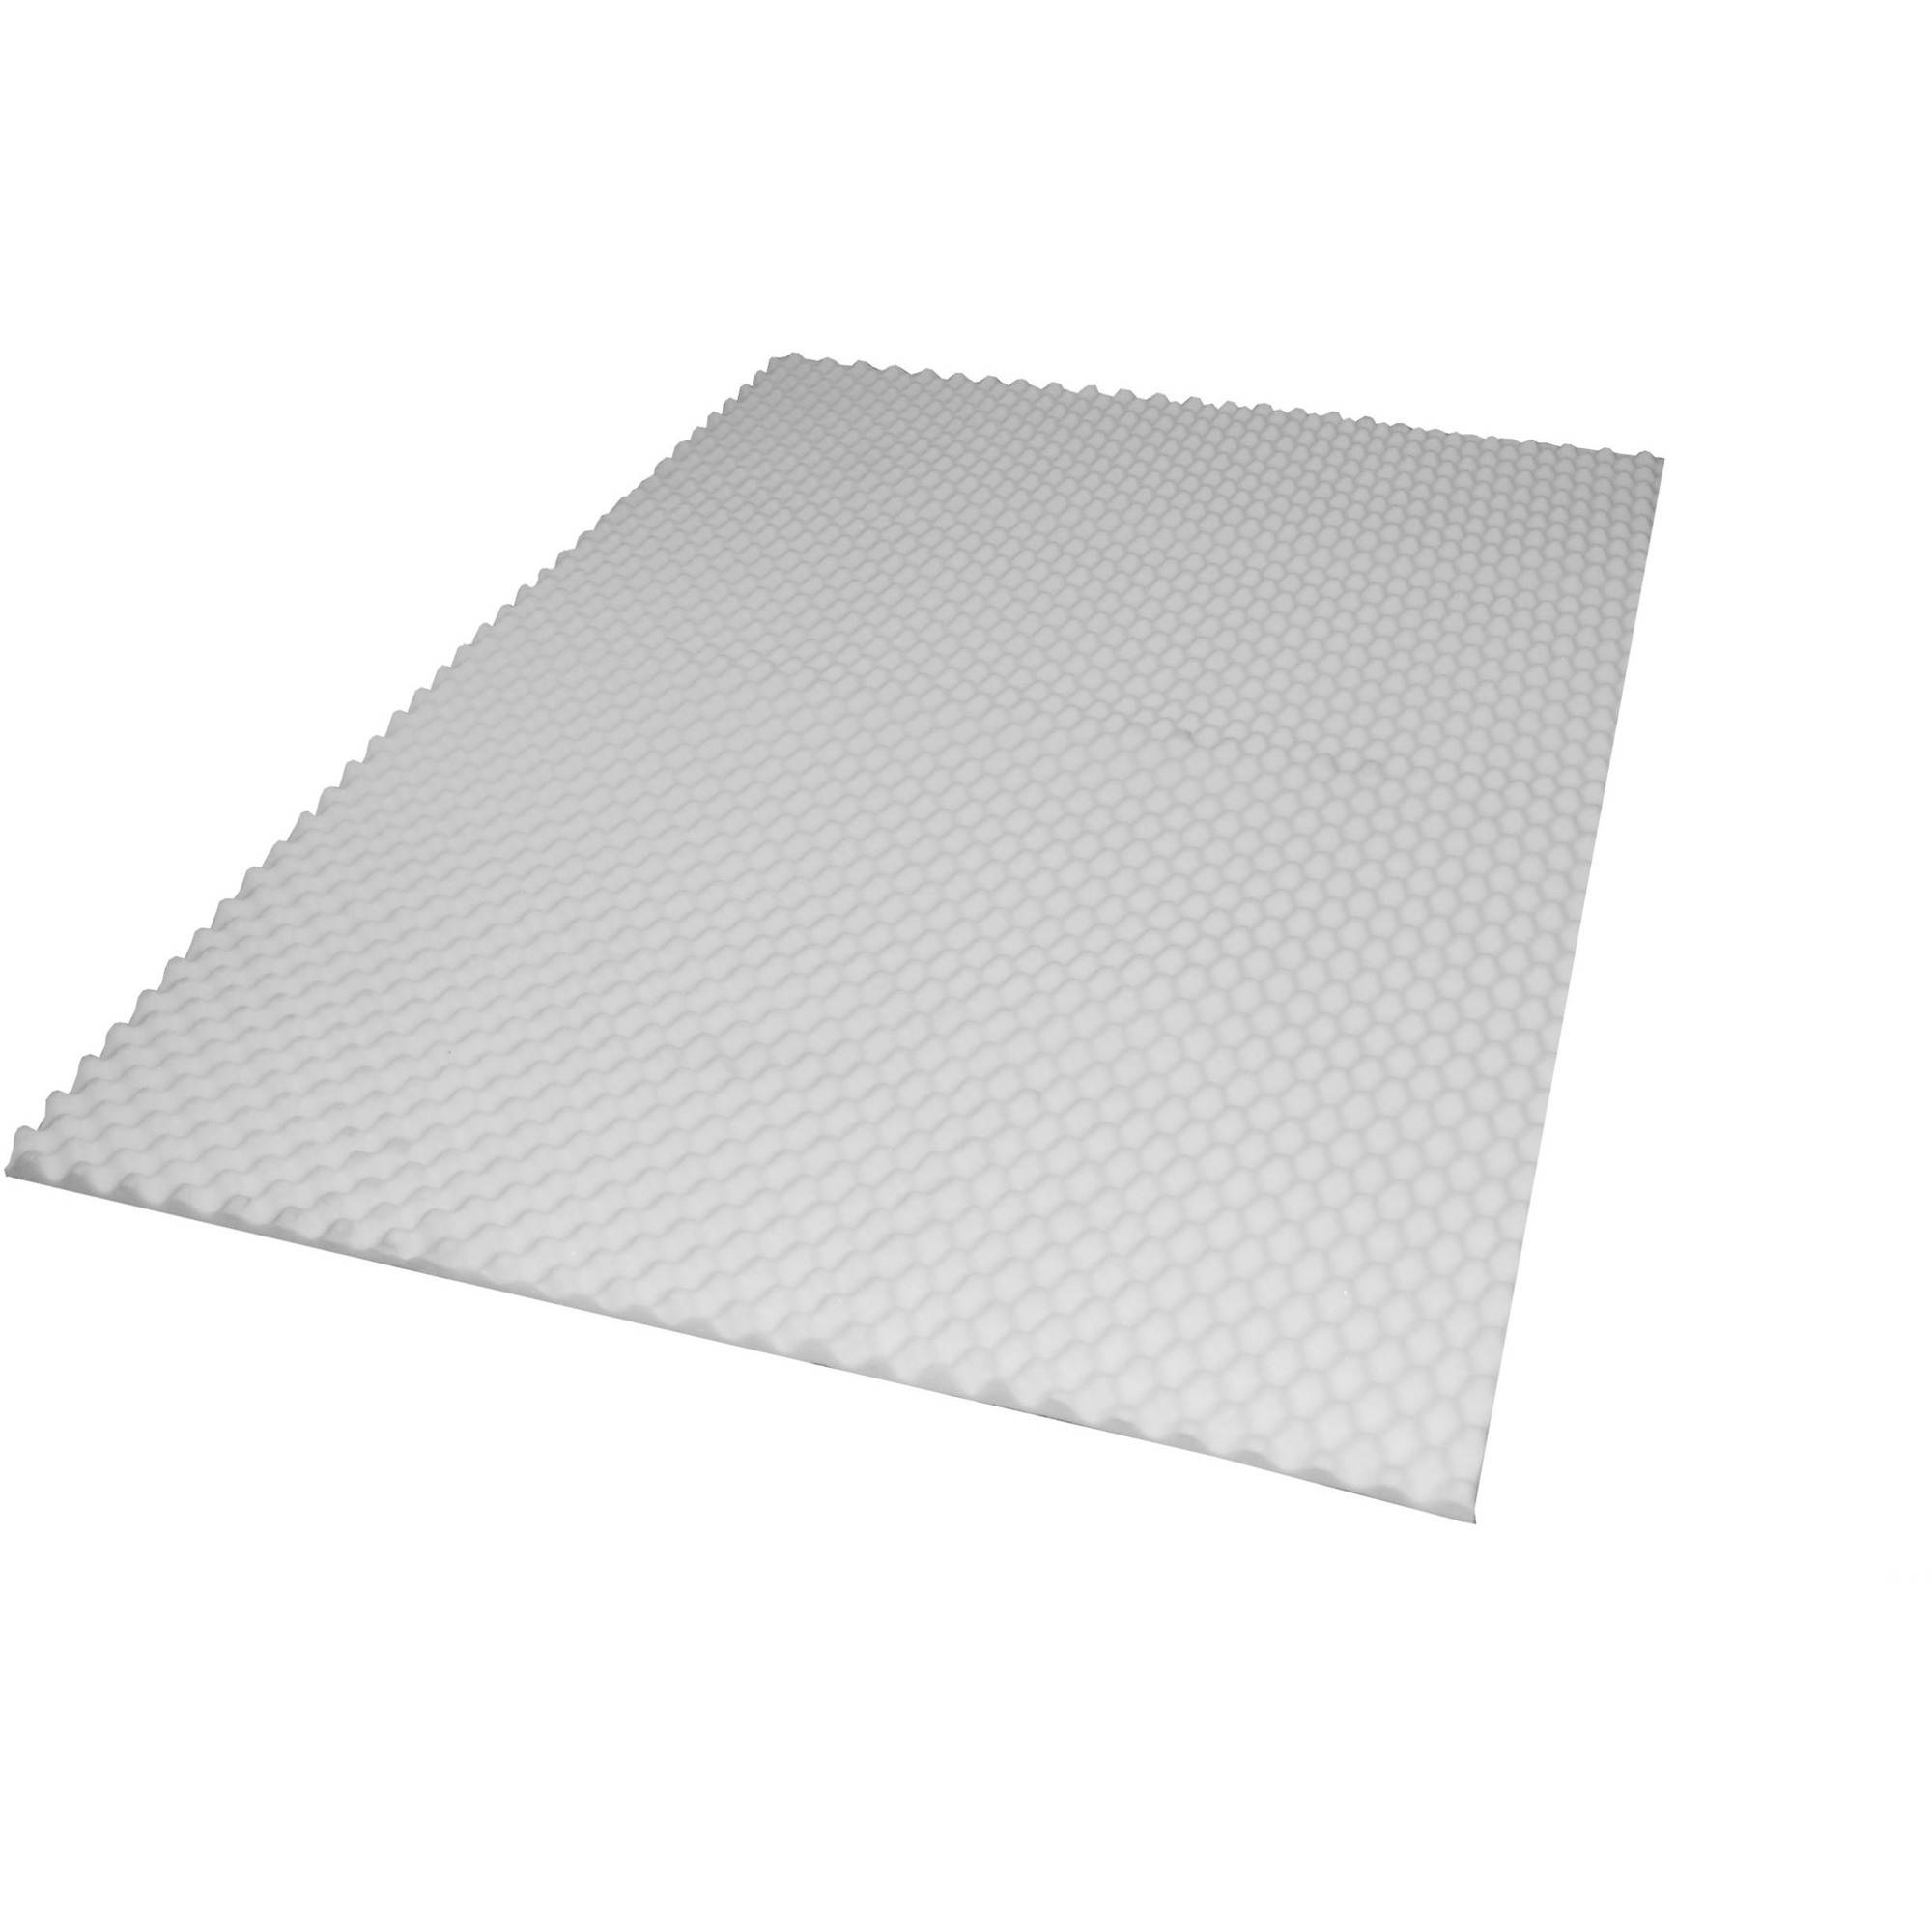 "Mainstays Foam Mattress 0.5"" Pad, 1 Each"